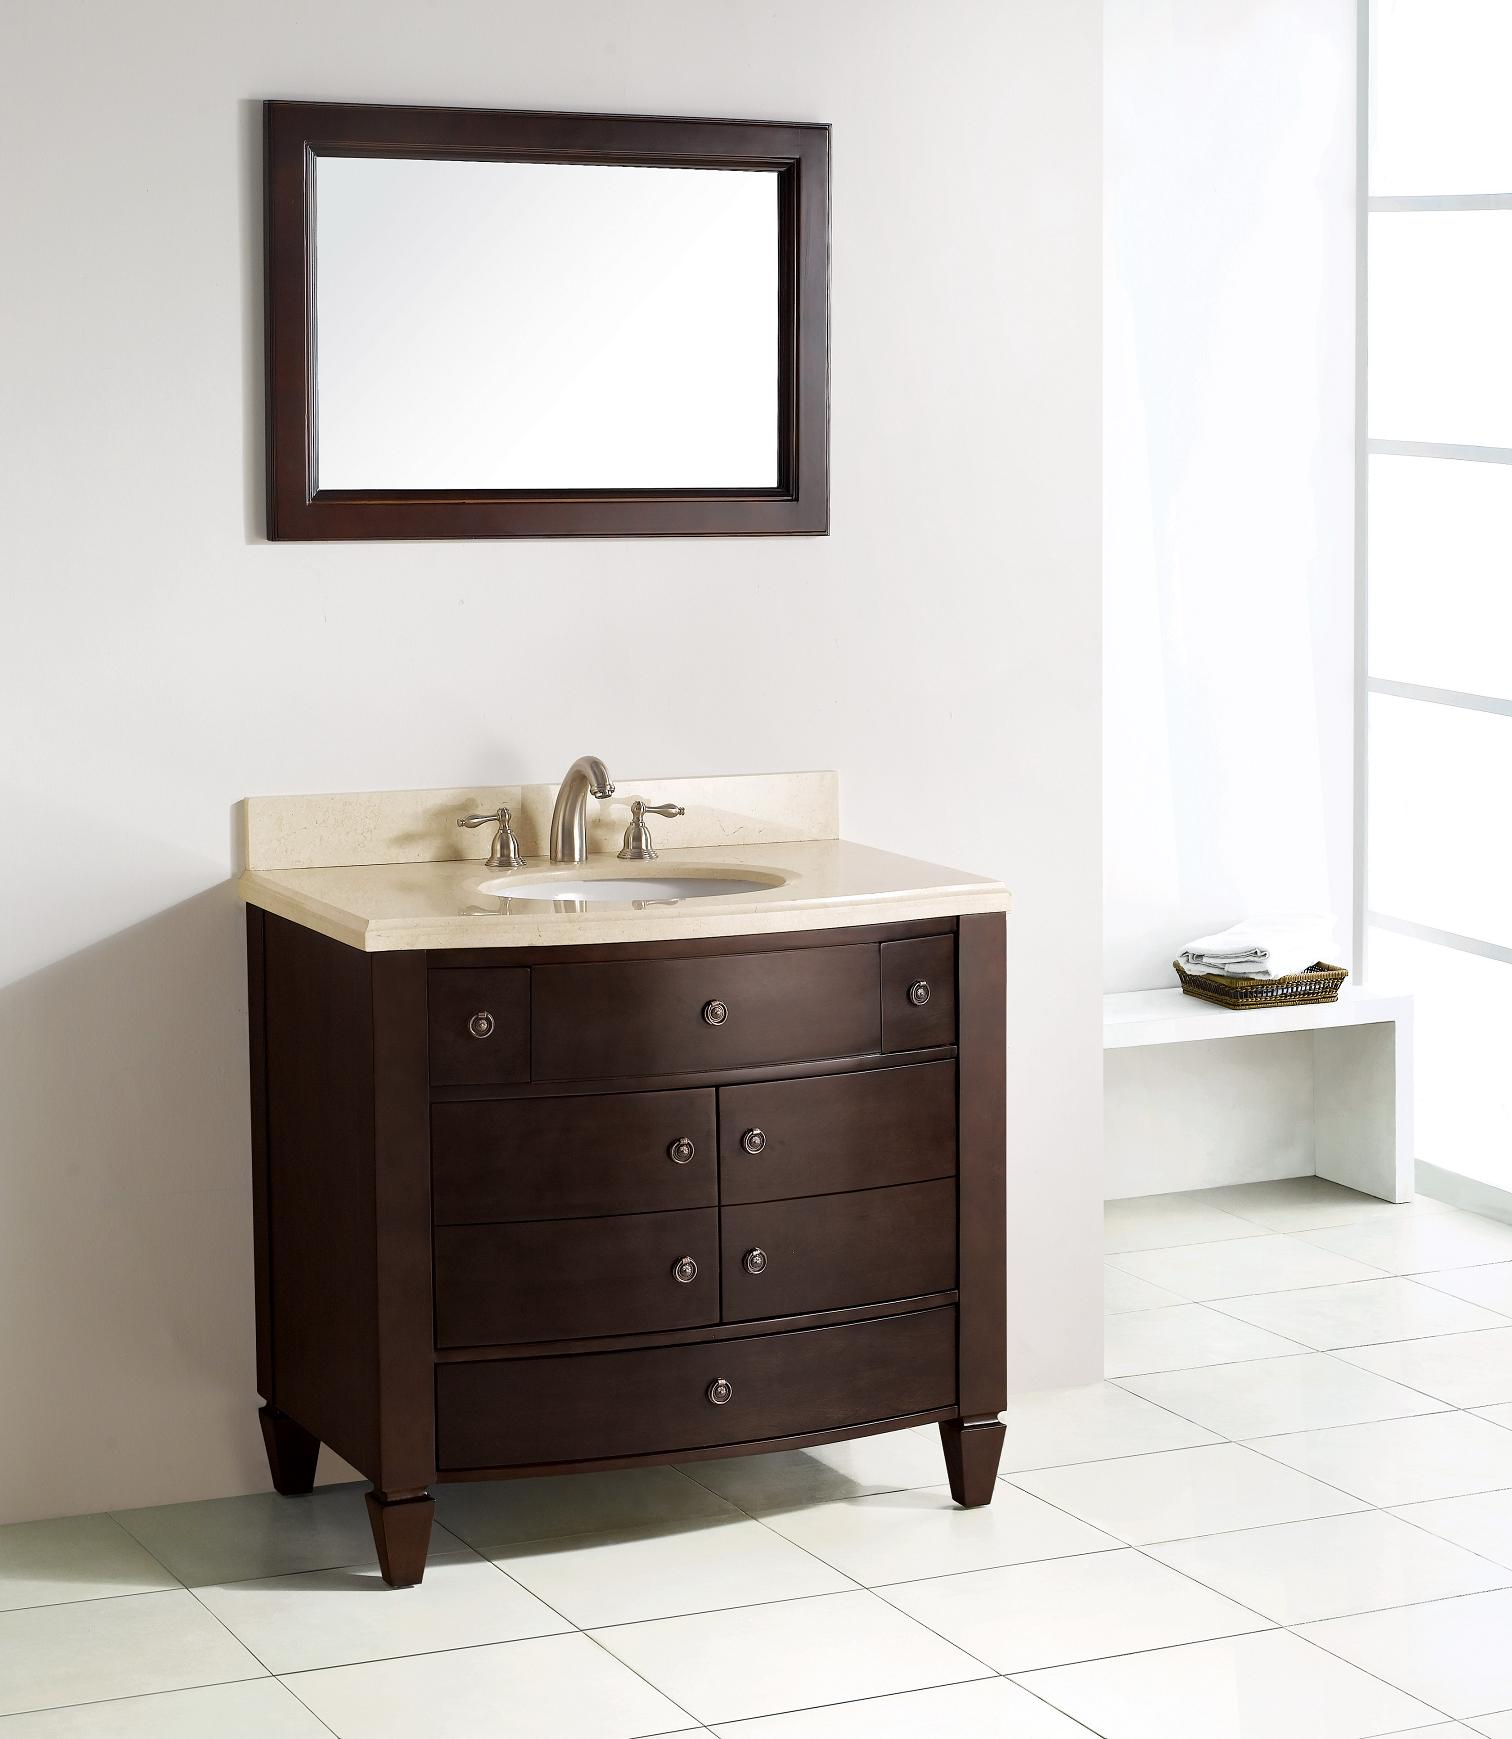 Single Bathroom Vanities from 36 to 48-Inches Wide